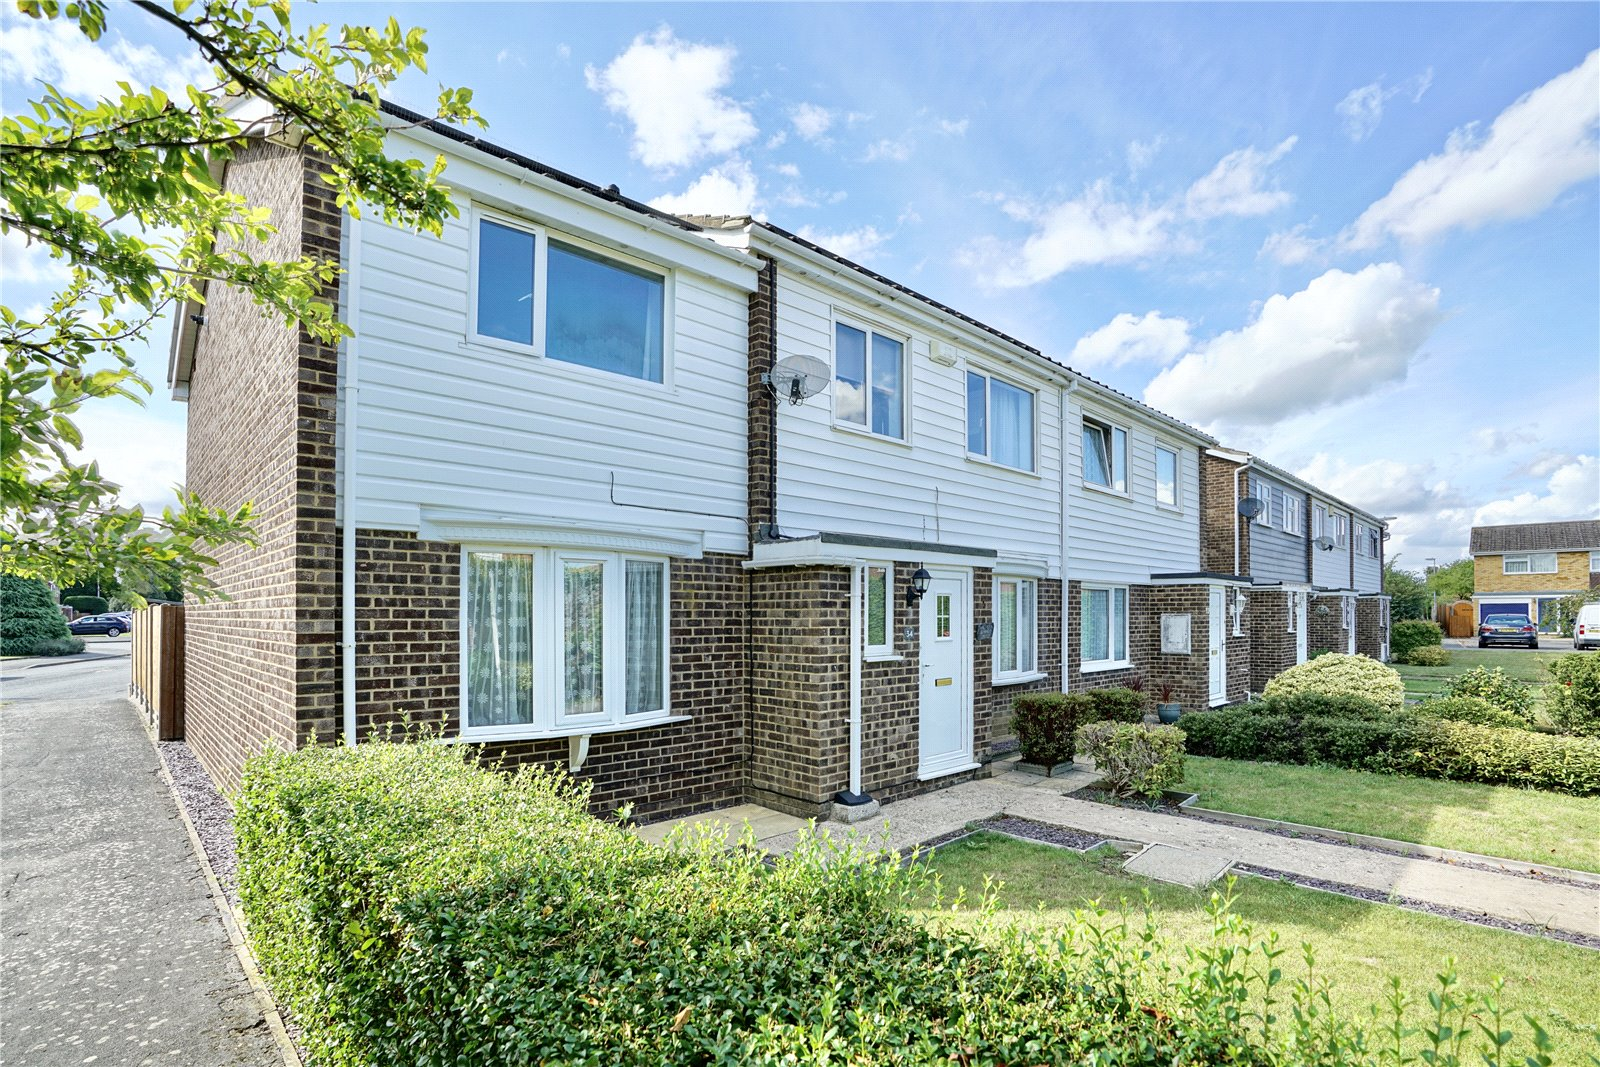 4 bed house for sale in Eaton Ford, Masefield Avenue, PE19 7LS, PE19